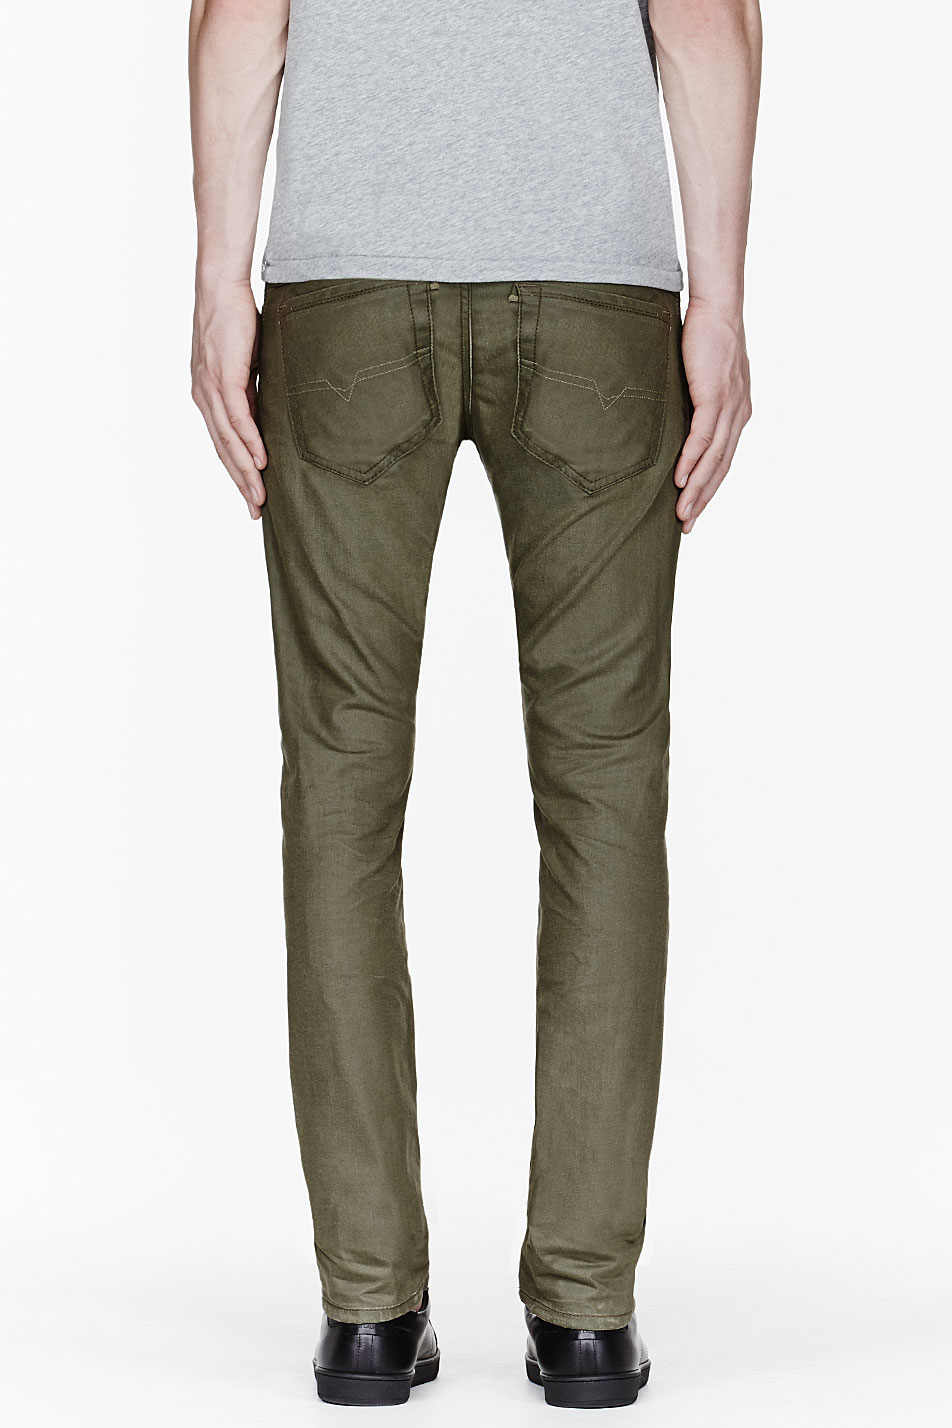 Lyst Diesel Olive Green Thavar Jeans In Green For Men